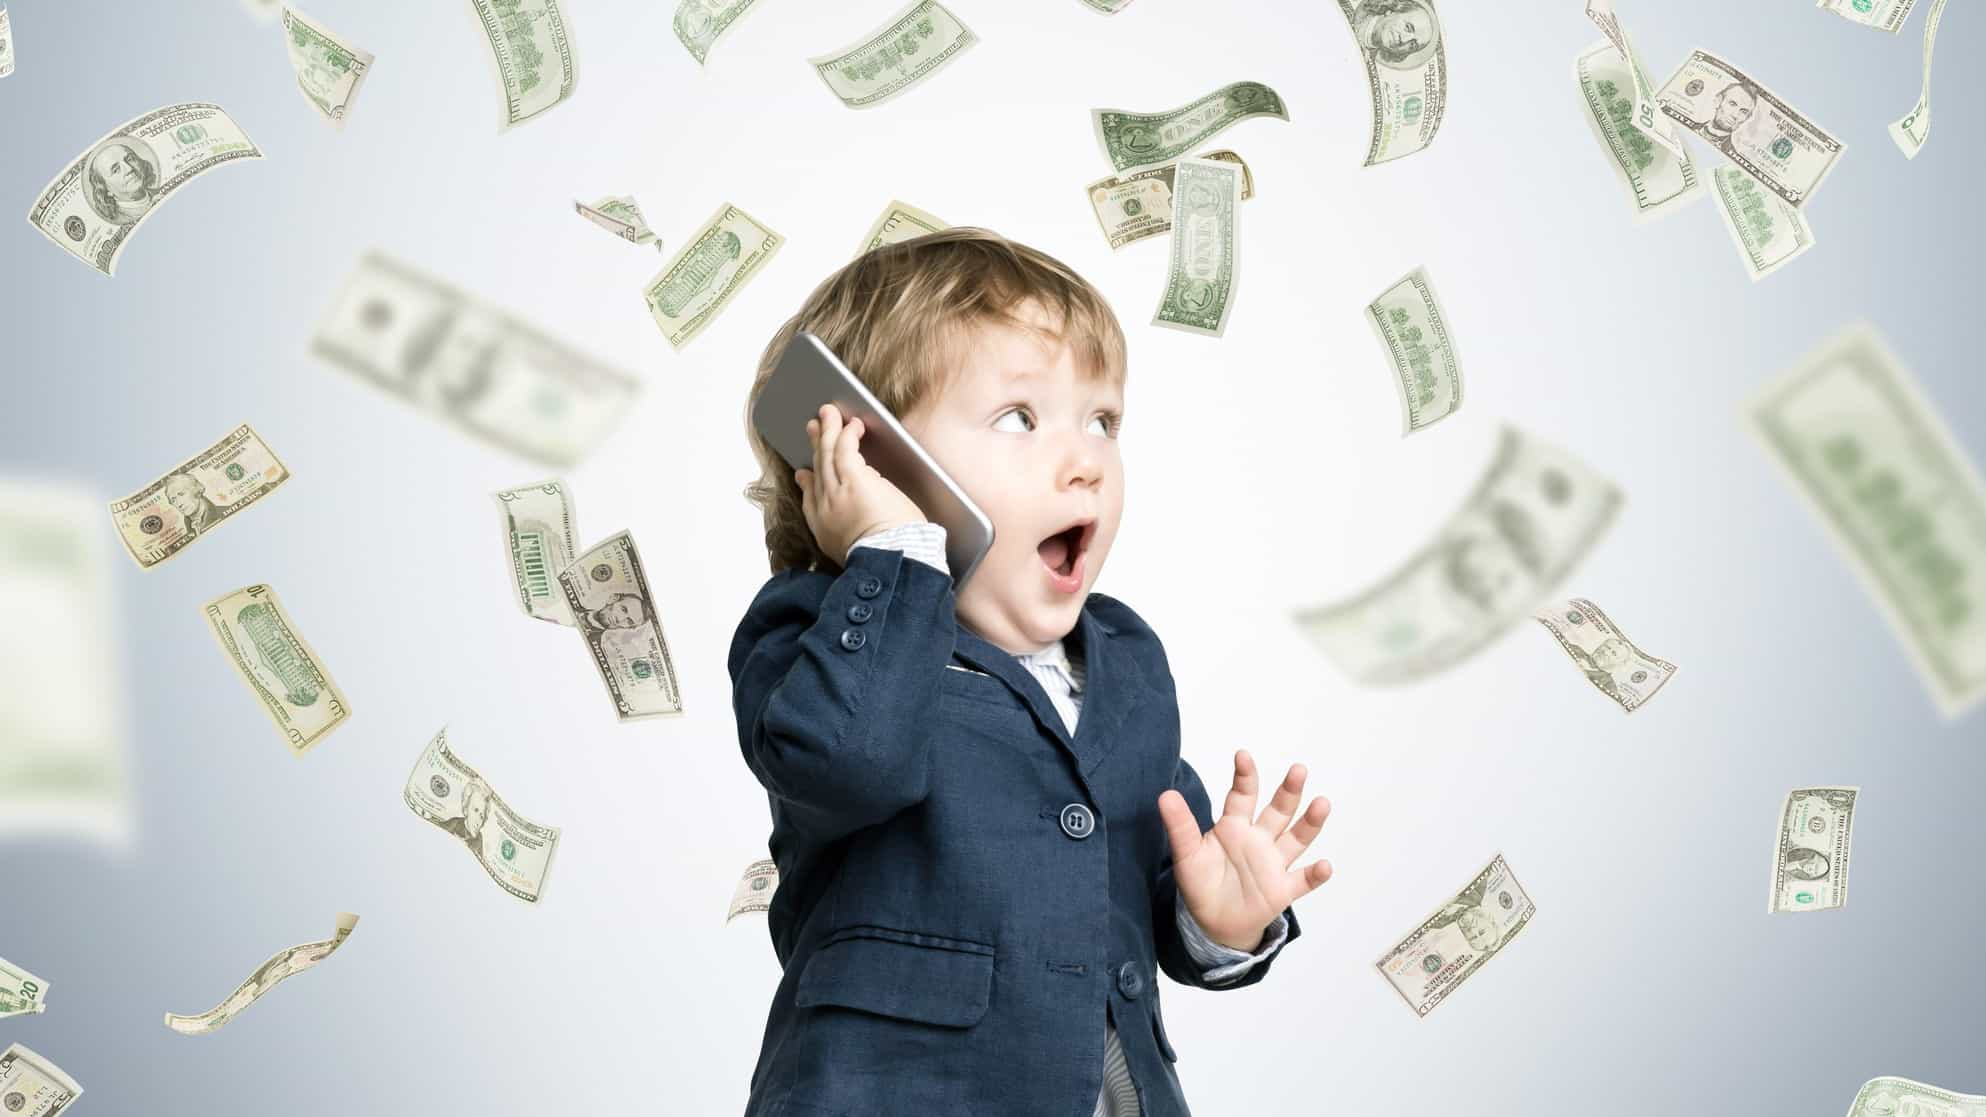 toddler in business attire surrounding by floating money representing asx shares beginner investor